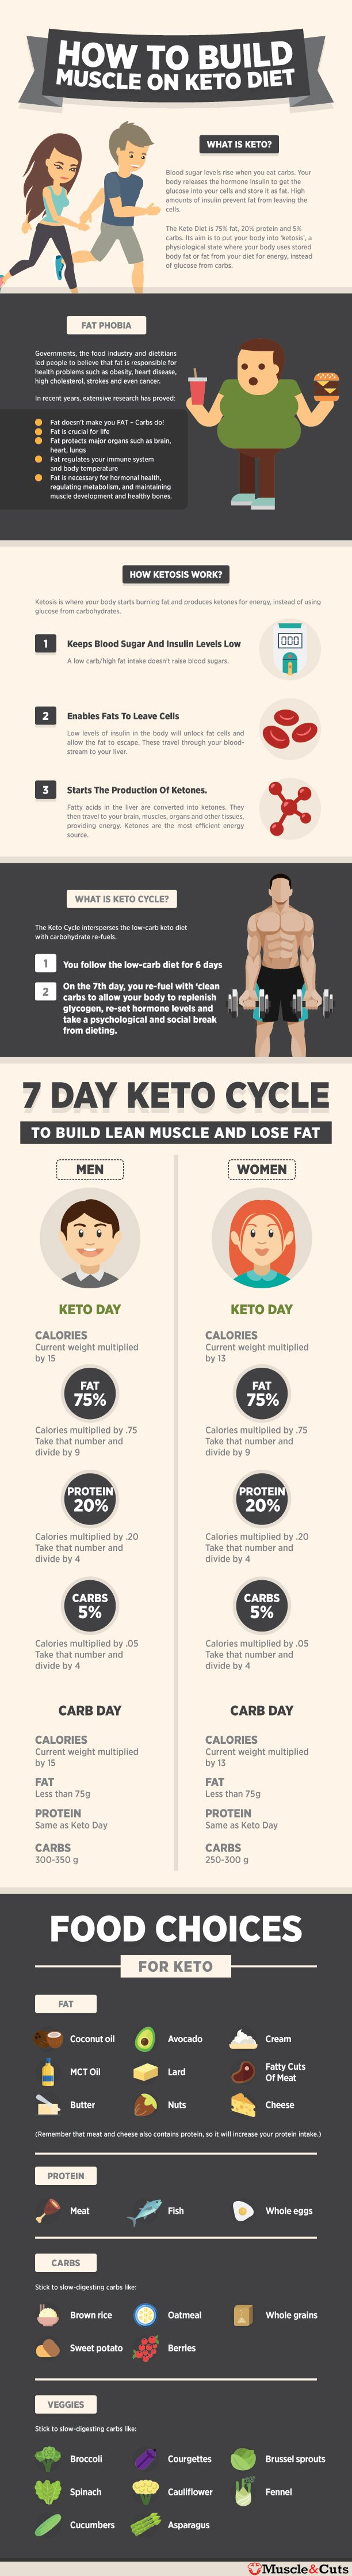 how to build muscle on keto diet